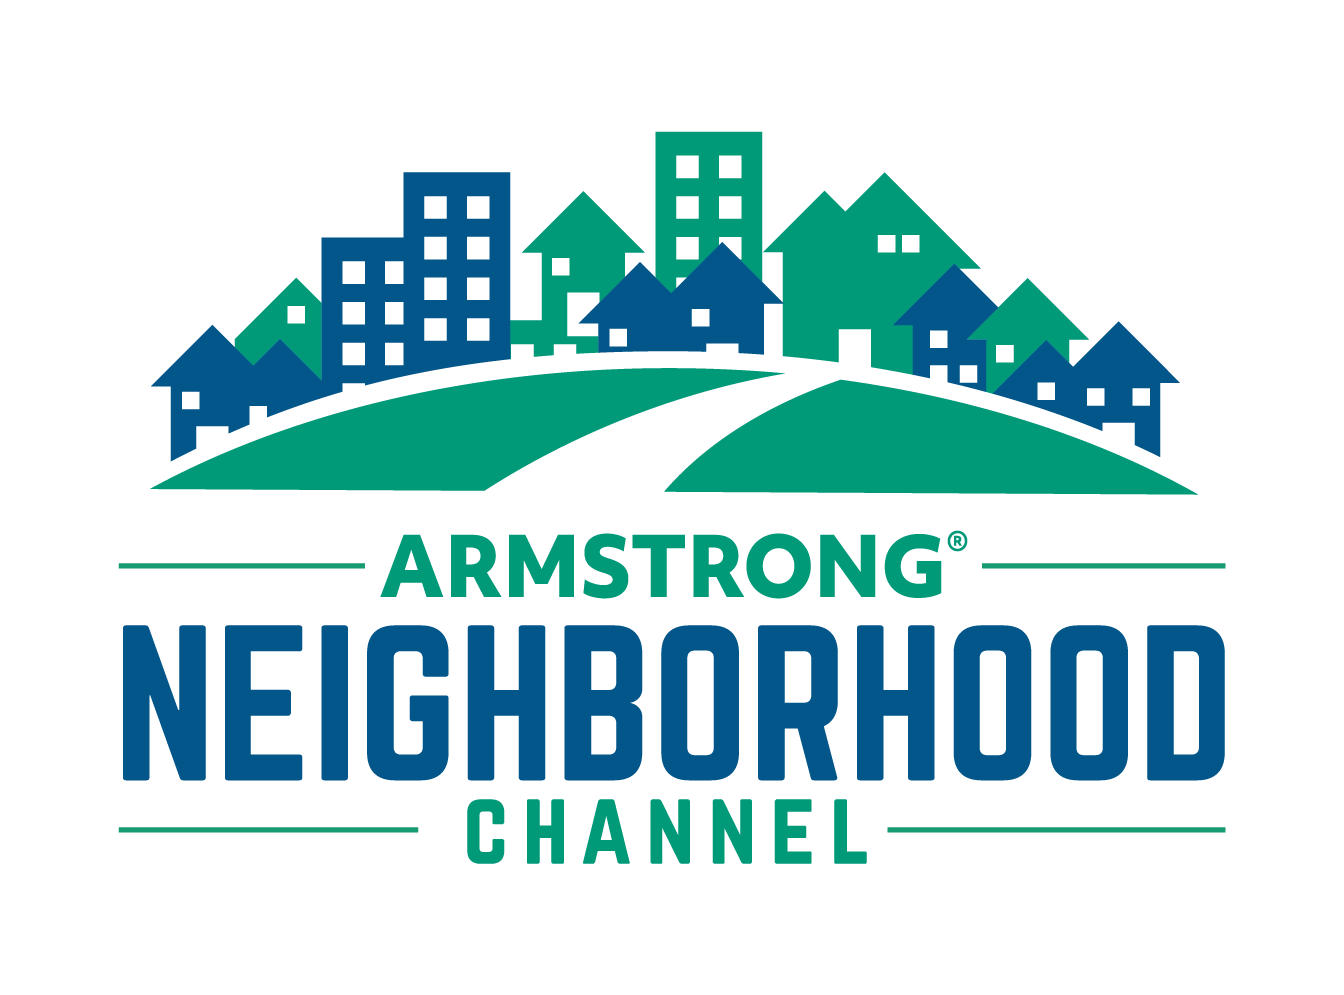 Armstrong Neighborhood Channel Schedule